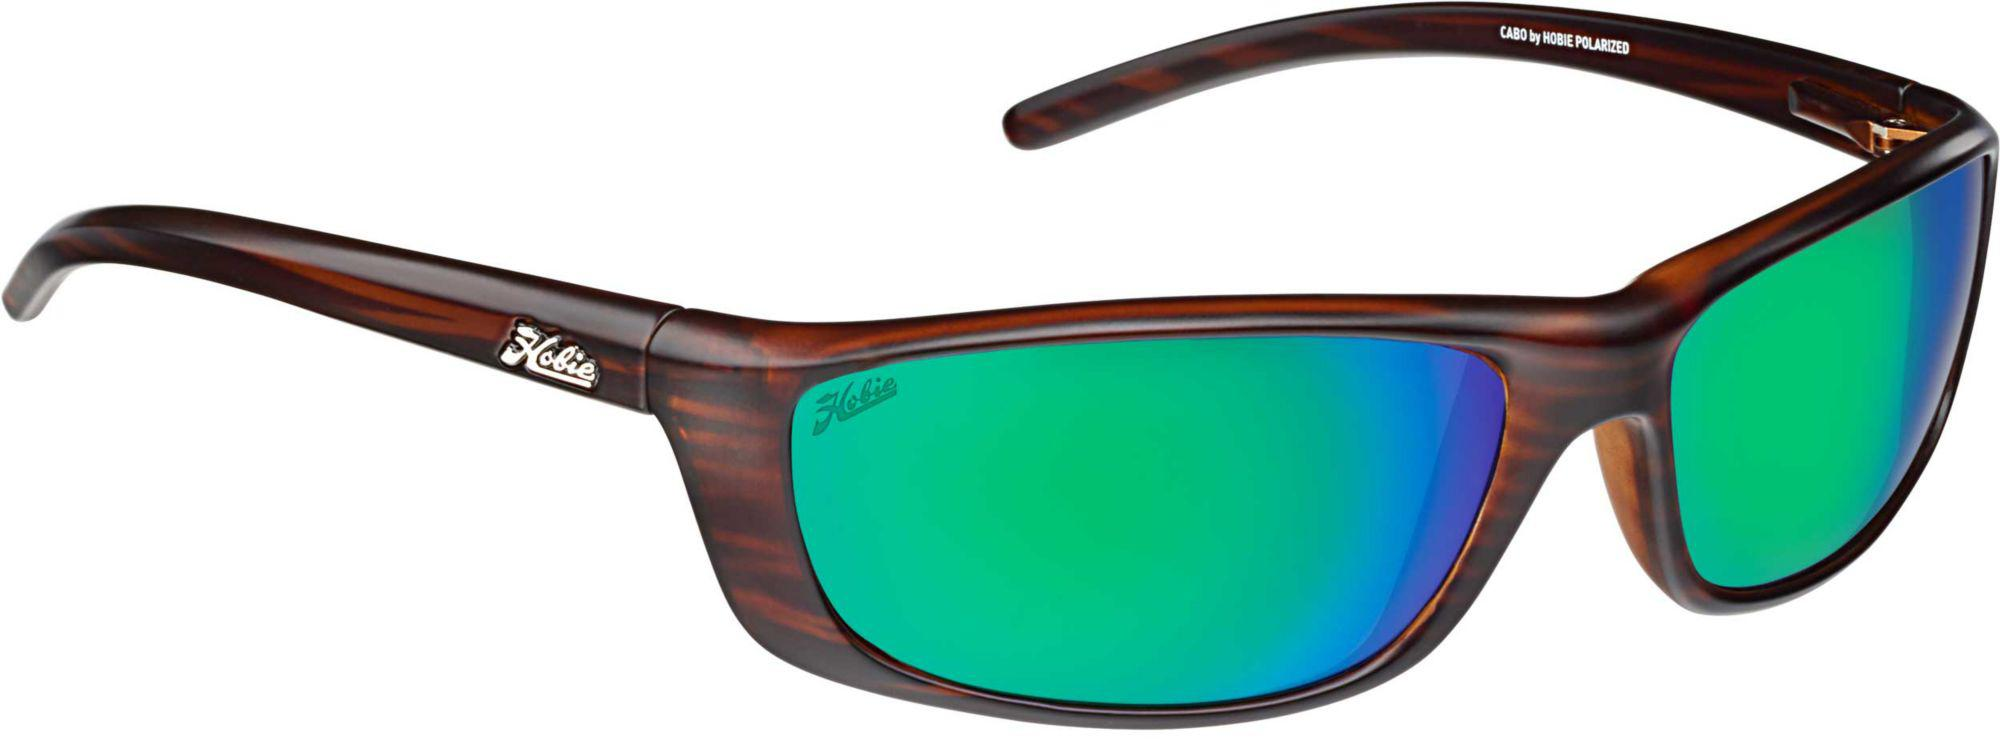 57c81583d2 Lyst - Hobie Cabo Polarized Sunglasses in Green for Men